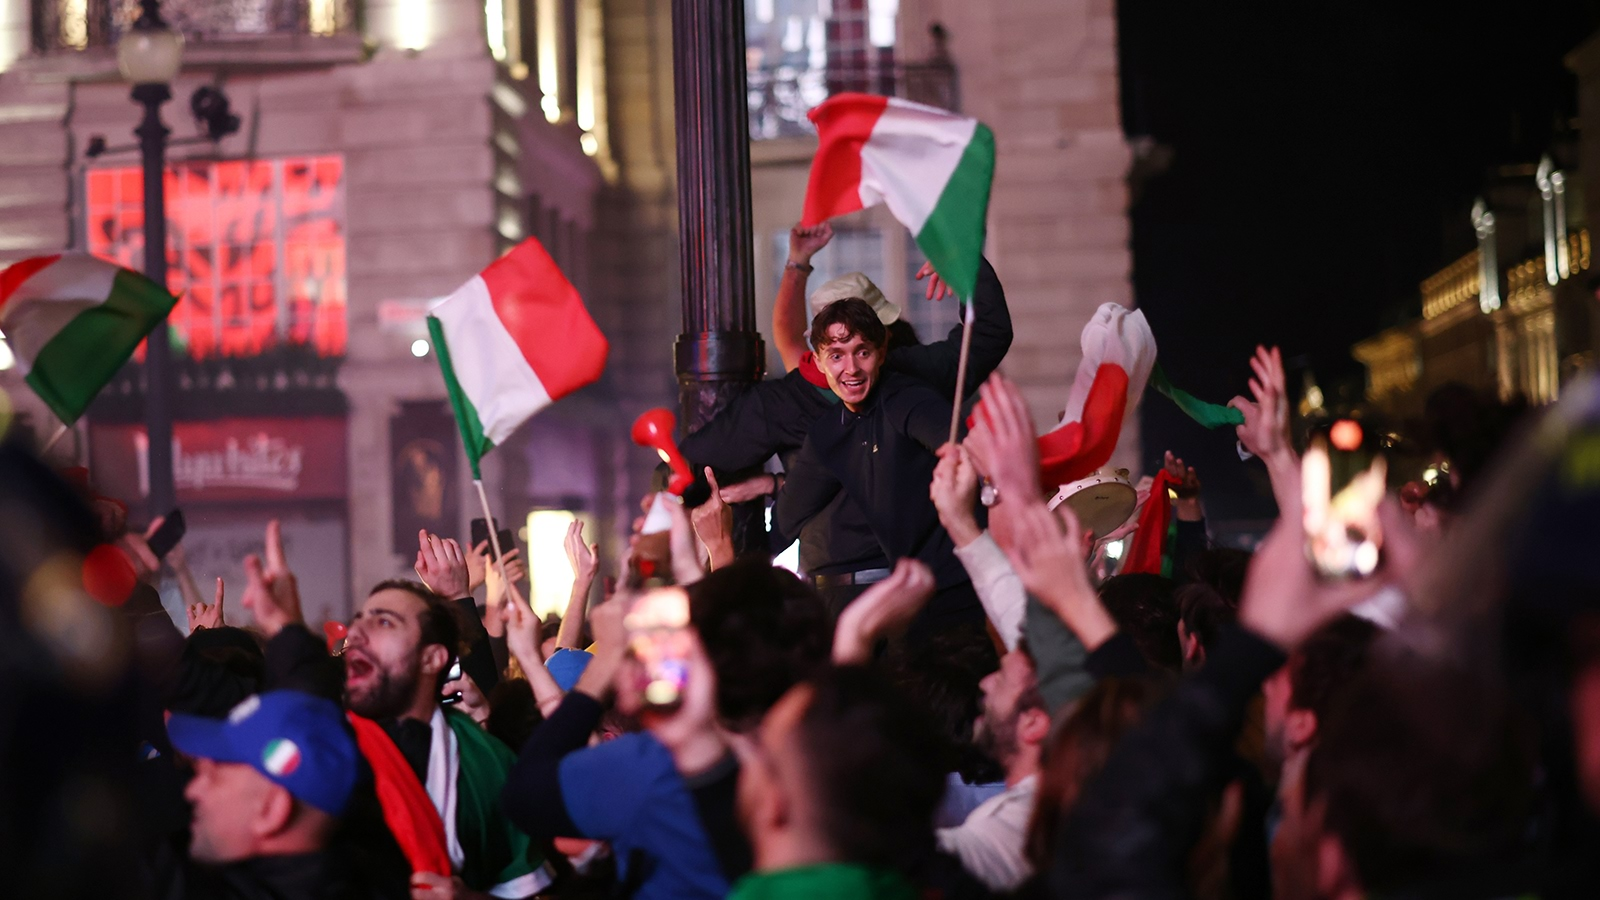 euro-2020-final-fans-gather-for-italy-v-england